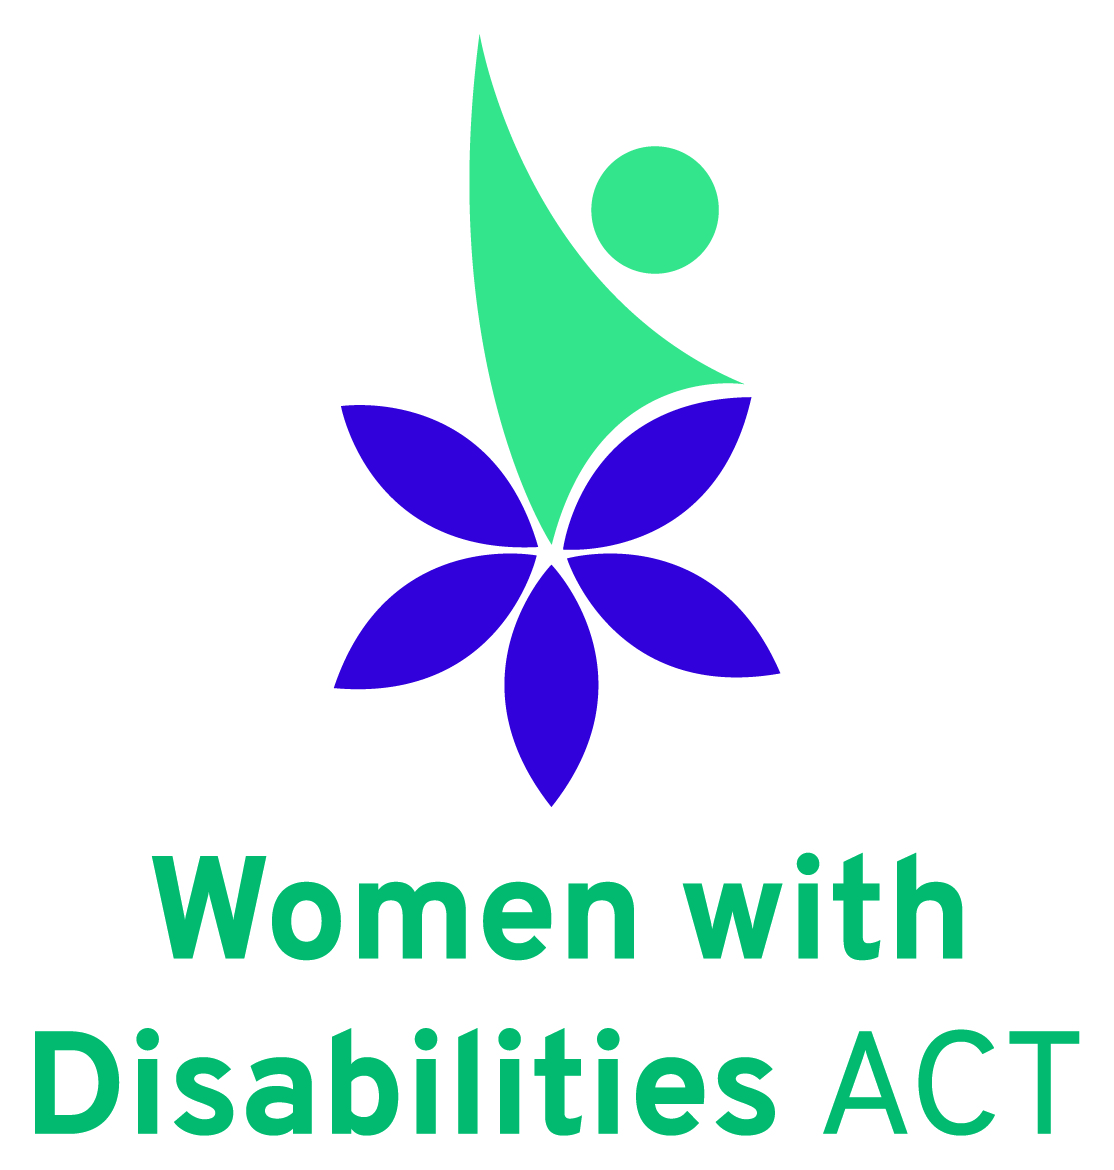 Women with Disabilities ACT Logo